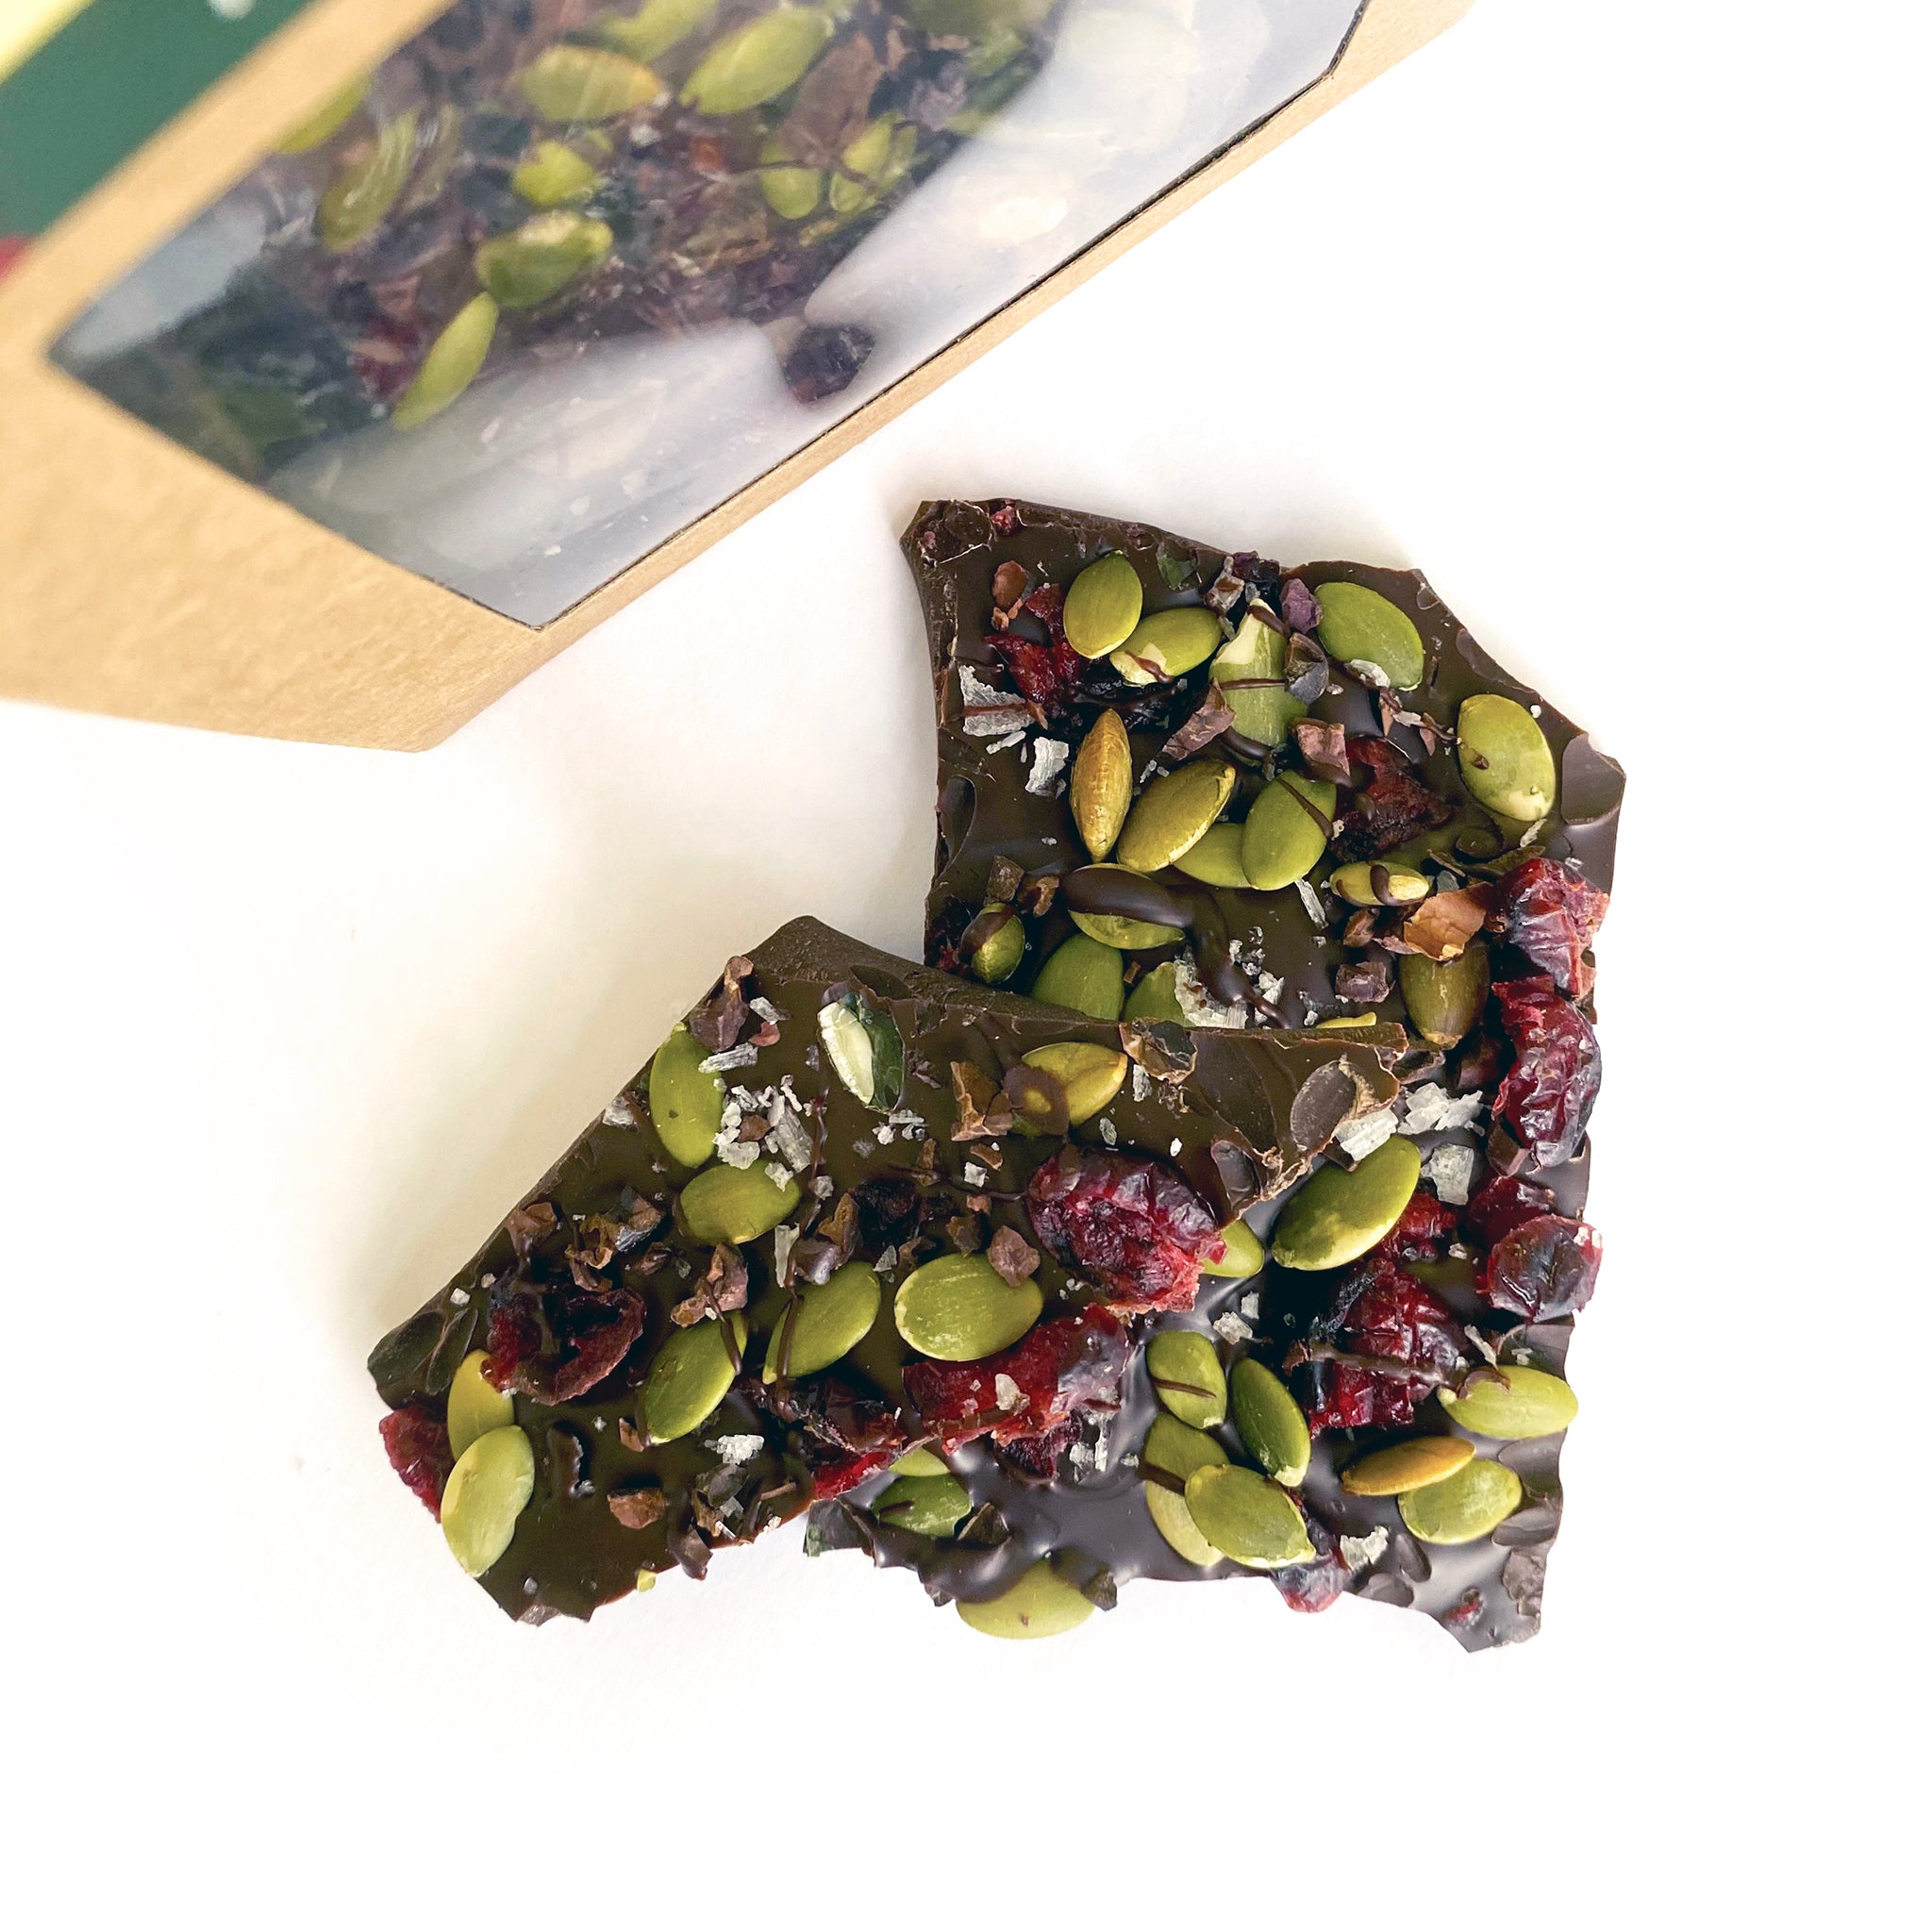 Pieces of chocolate bark out of packaging, exposing cranberries, toasted pumpkin seeds, cocoa nibs and flecks of sea salt